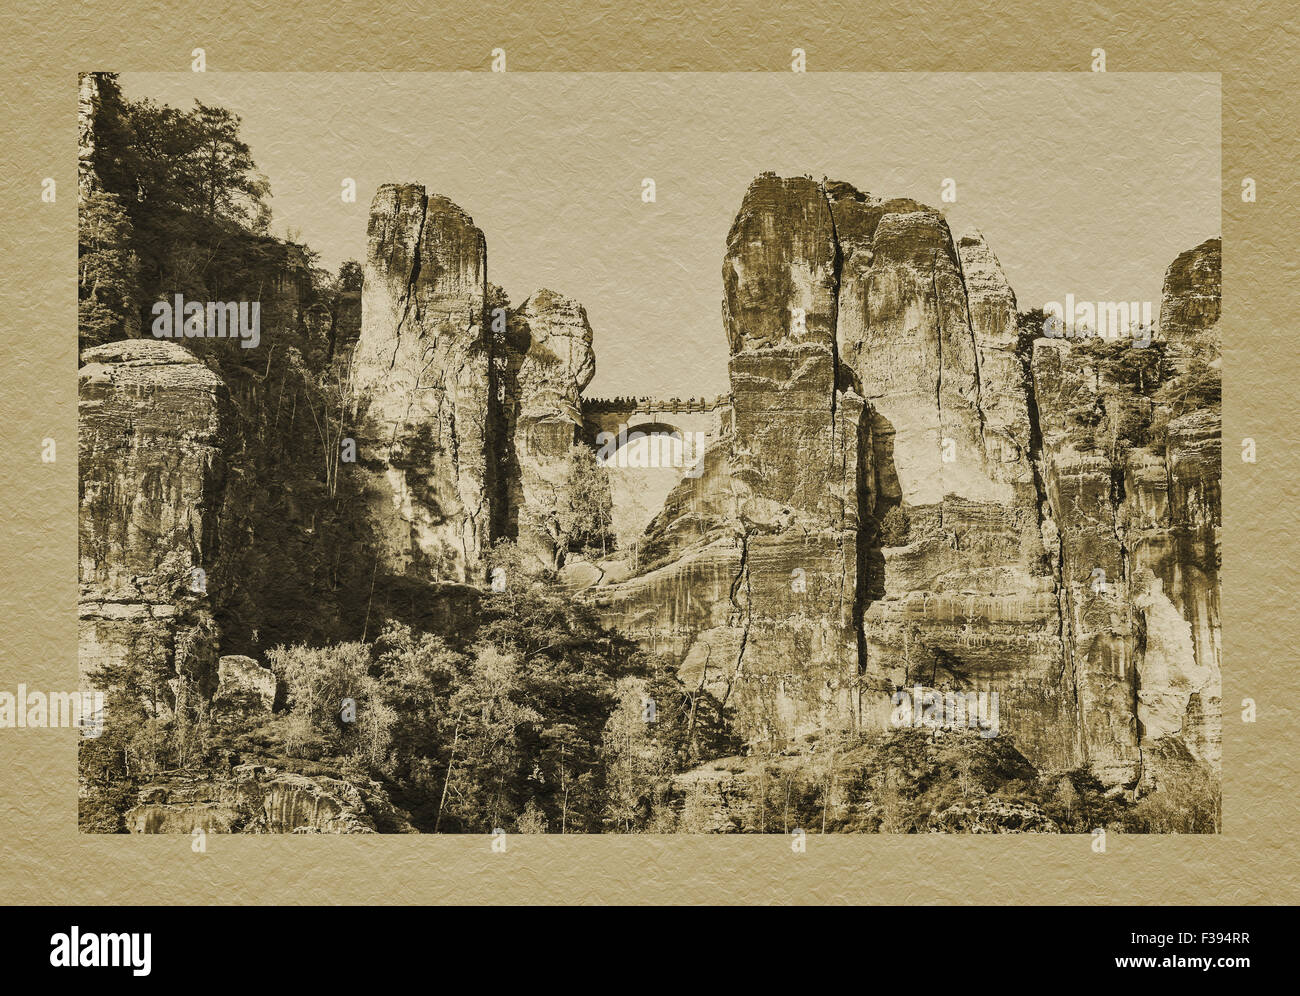 Spectacular rock formation Bastei (Bastion), most visited tourist attraction in the Saxon Switzerland, Rathen, Saxony, - Stock Image